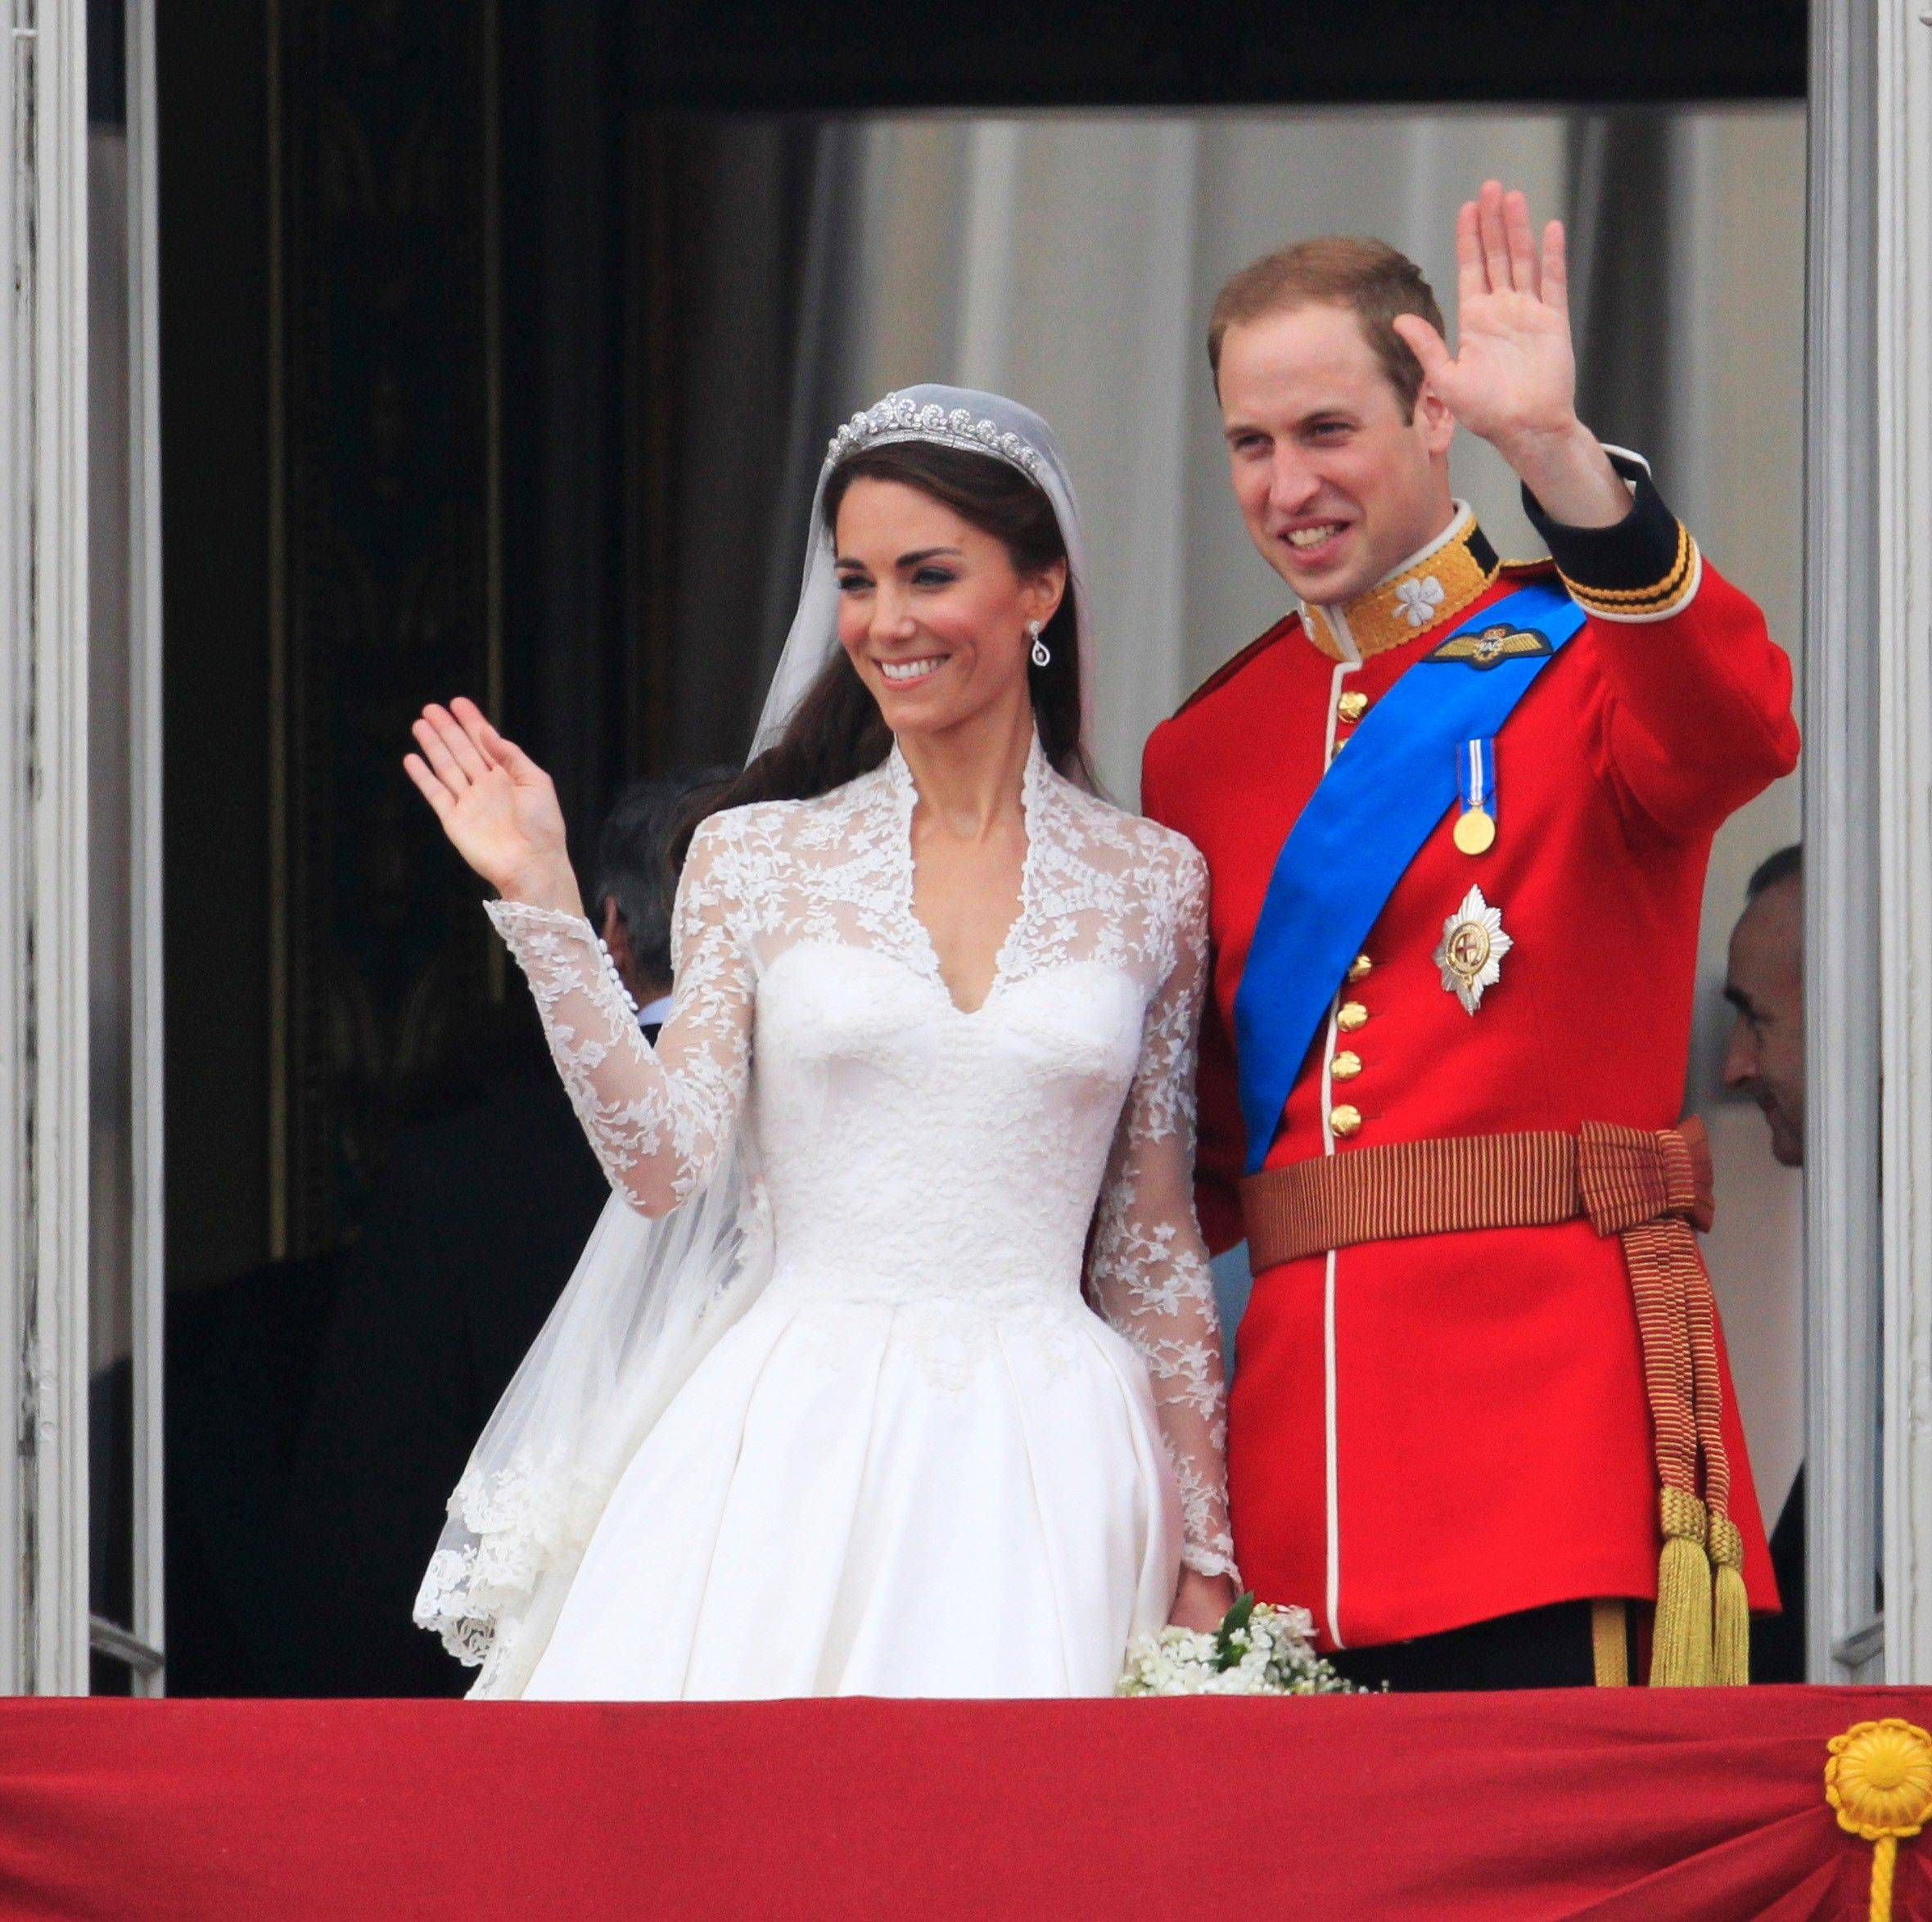 A new DVD lets royal family watchers relive the wedding of Britain's Prince William and Catherine Middleton.